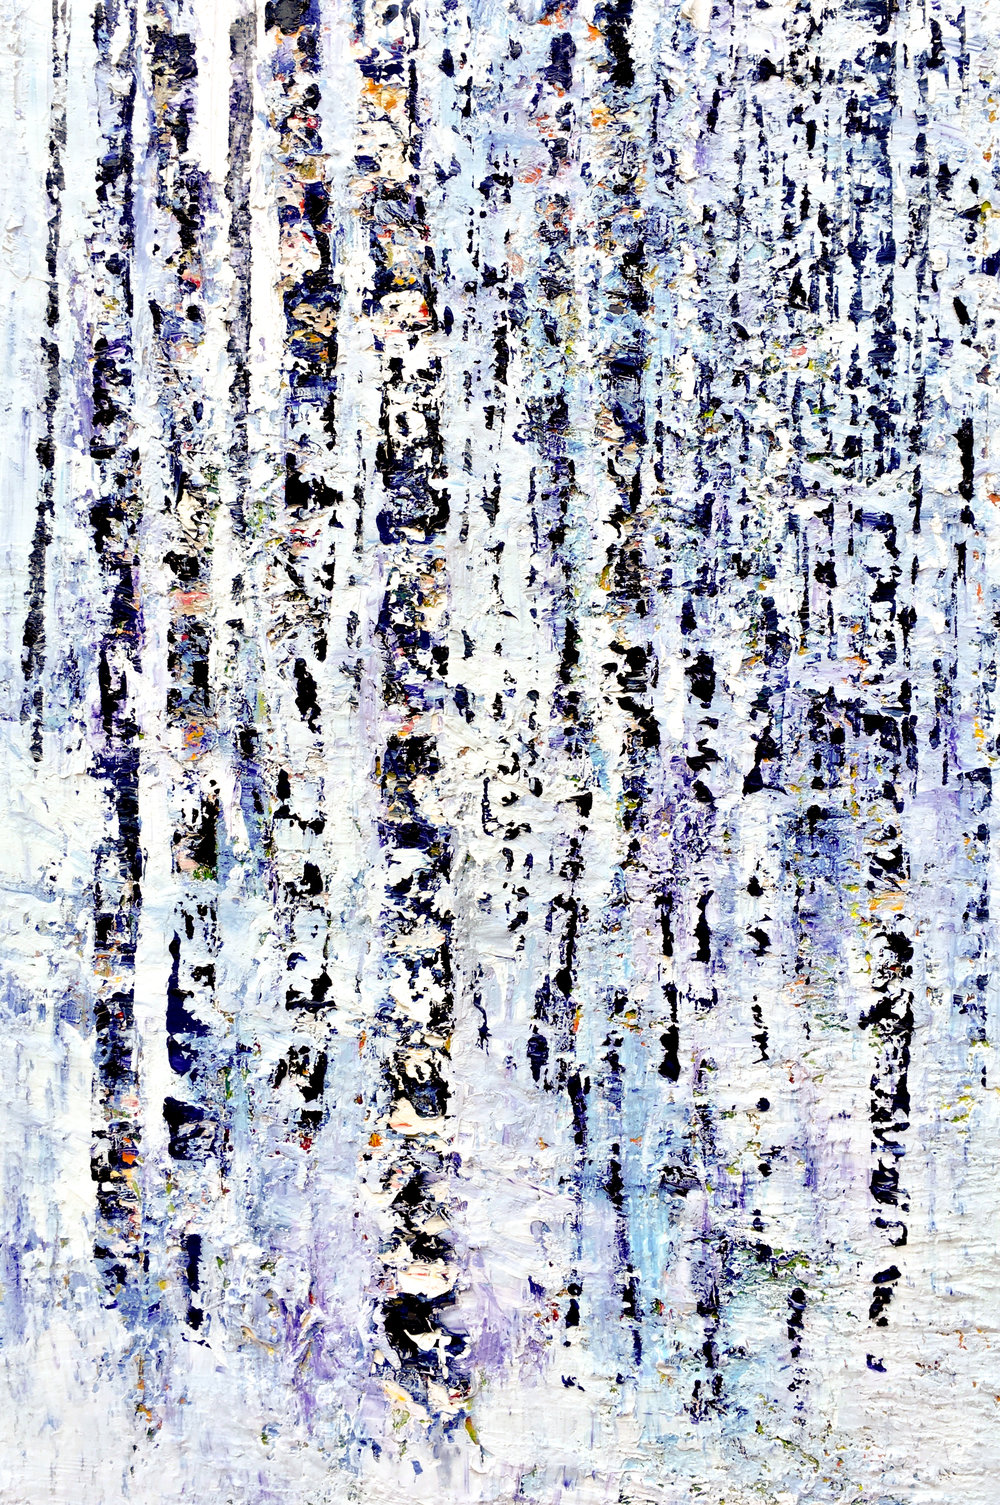 Winter Mountain<br>36 x 24 in.